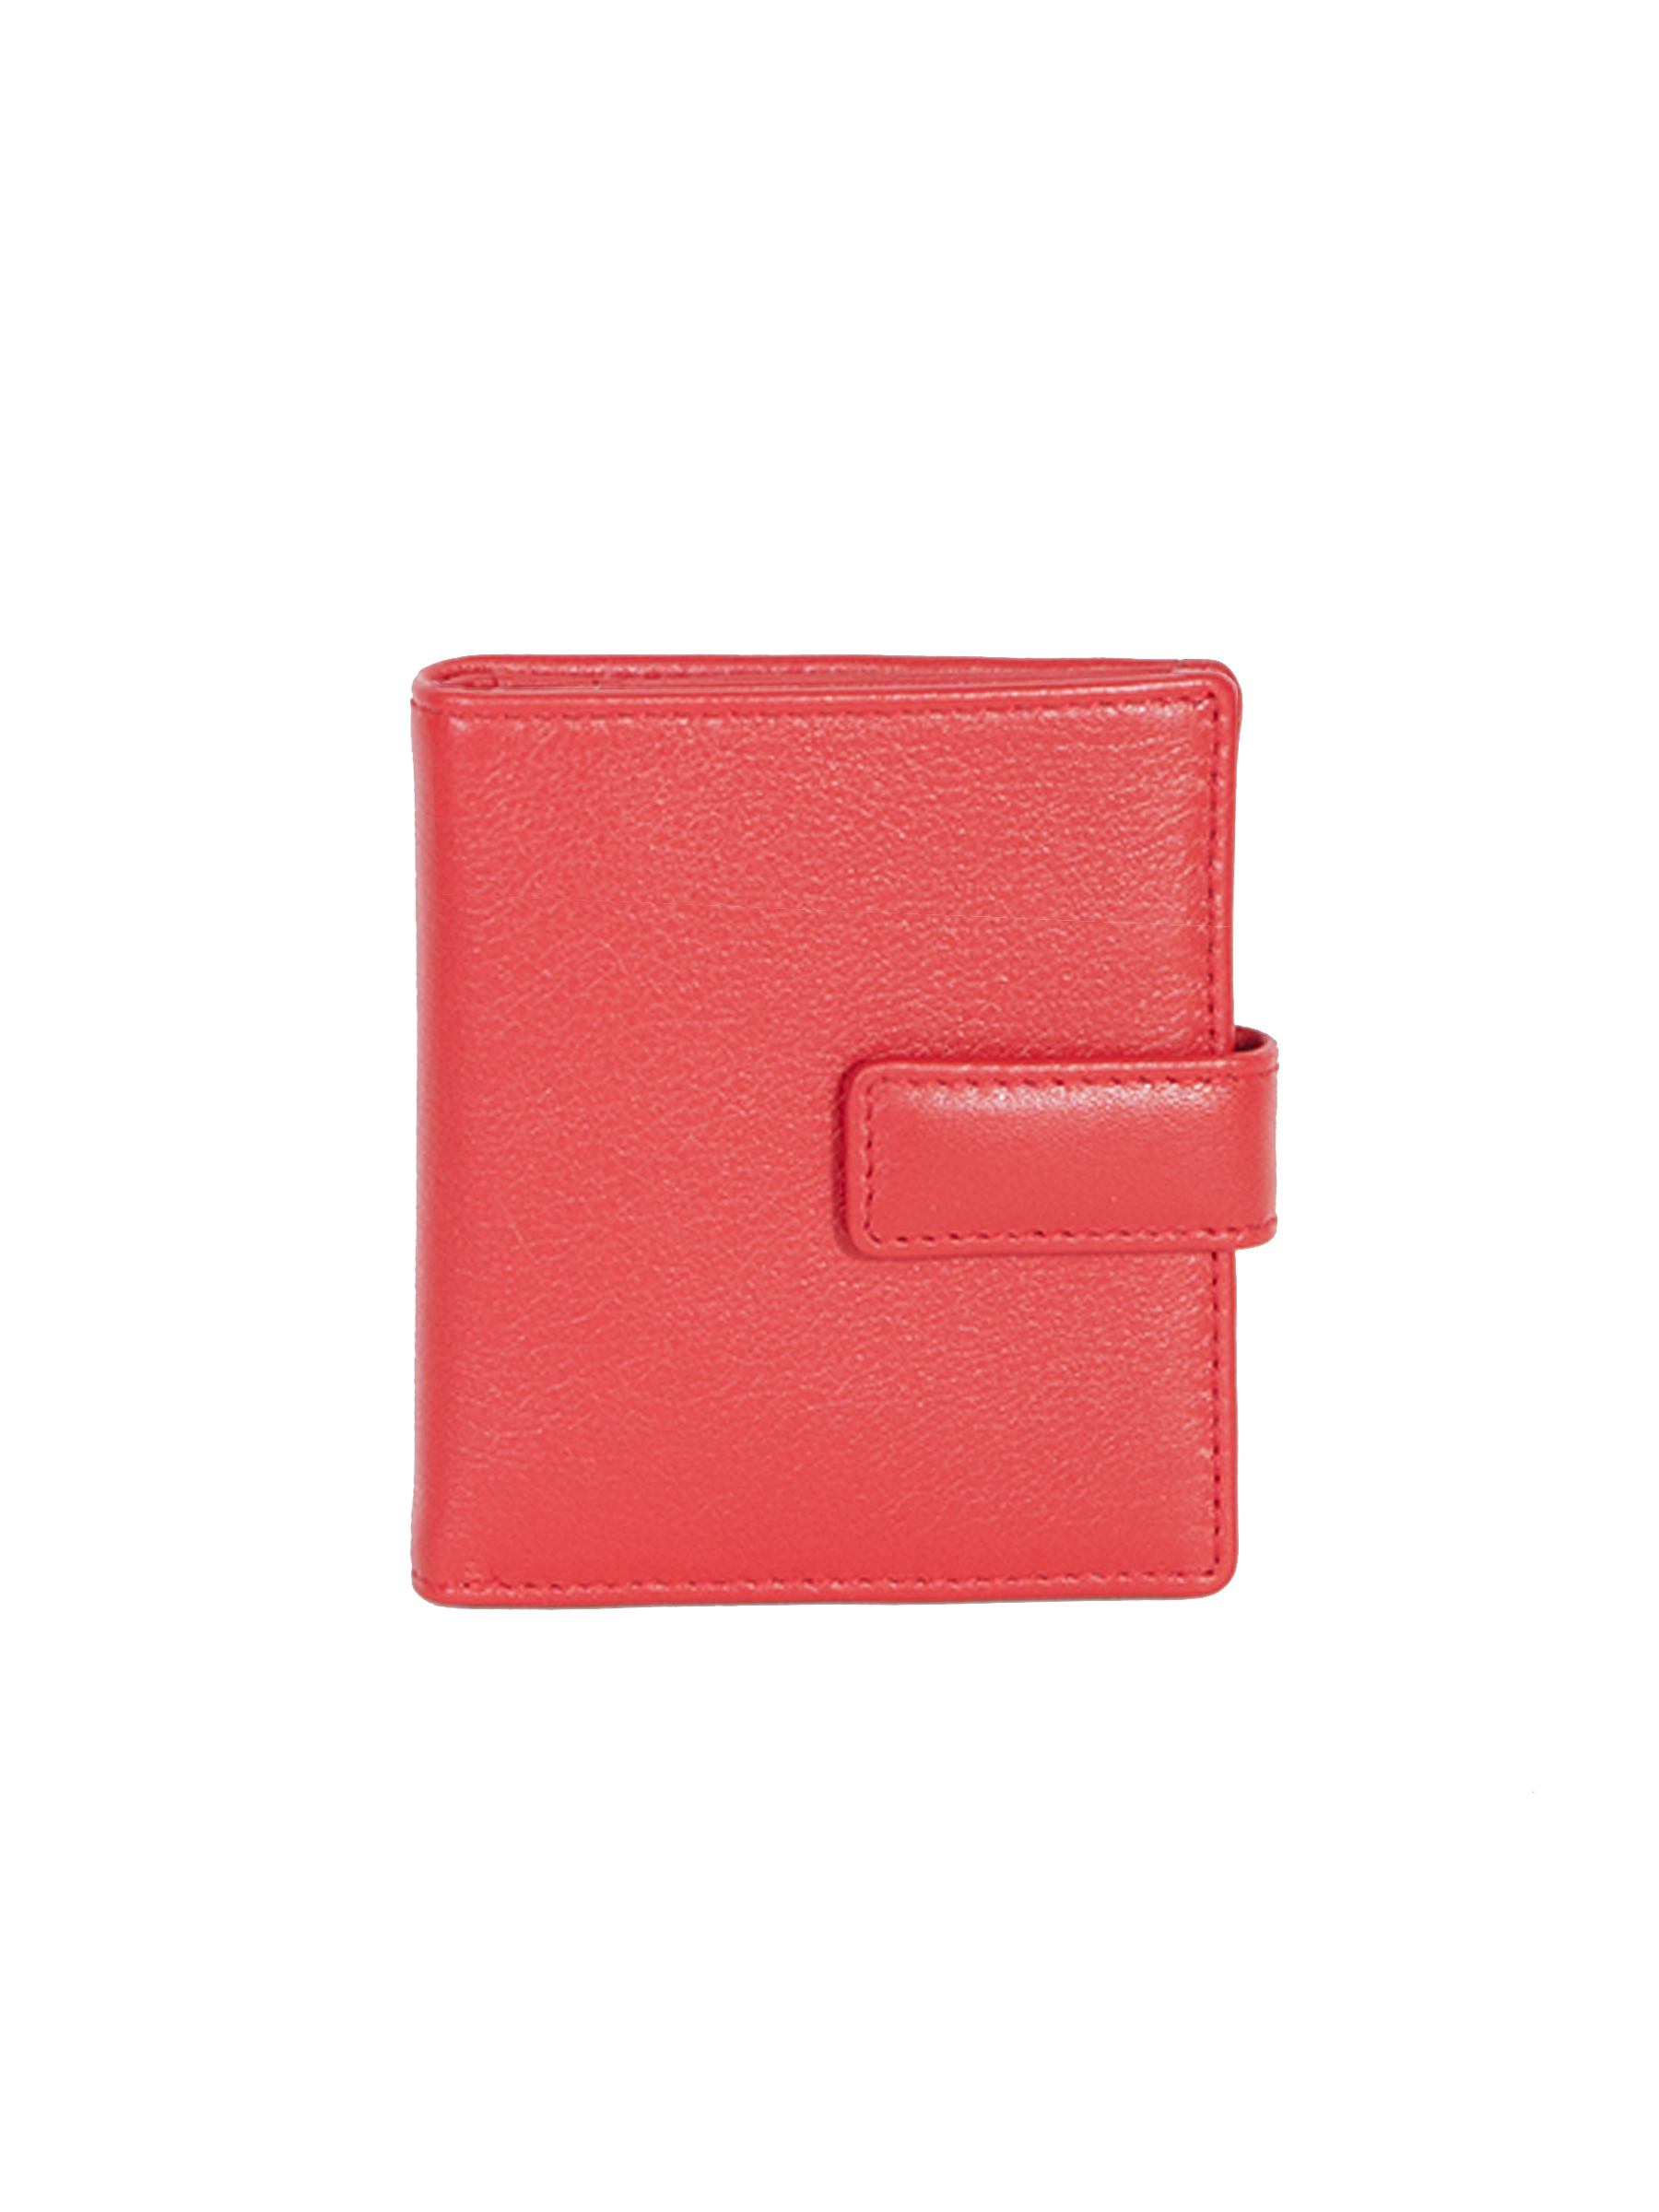 Ladies leather mini wallet with tab closure